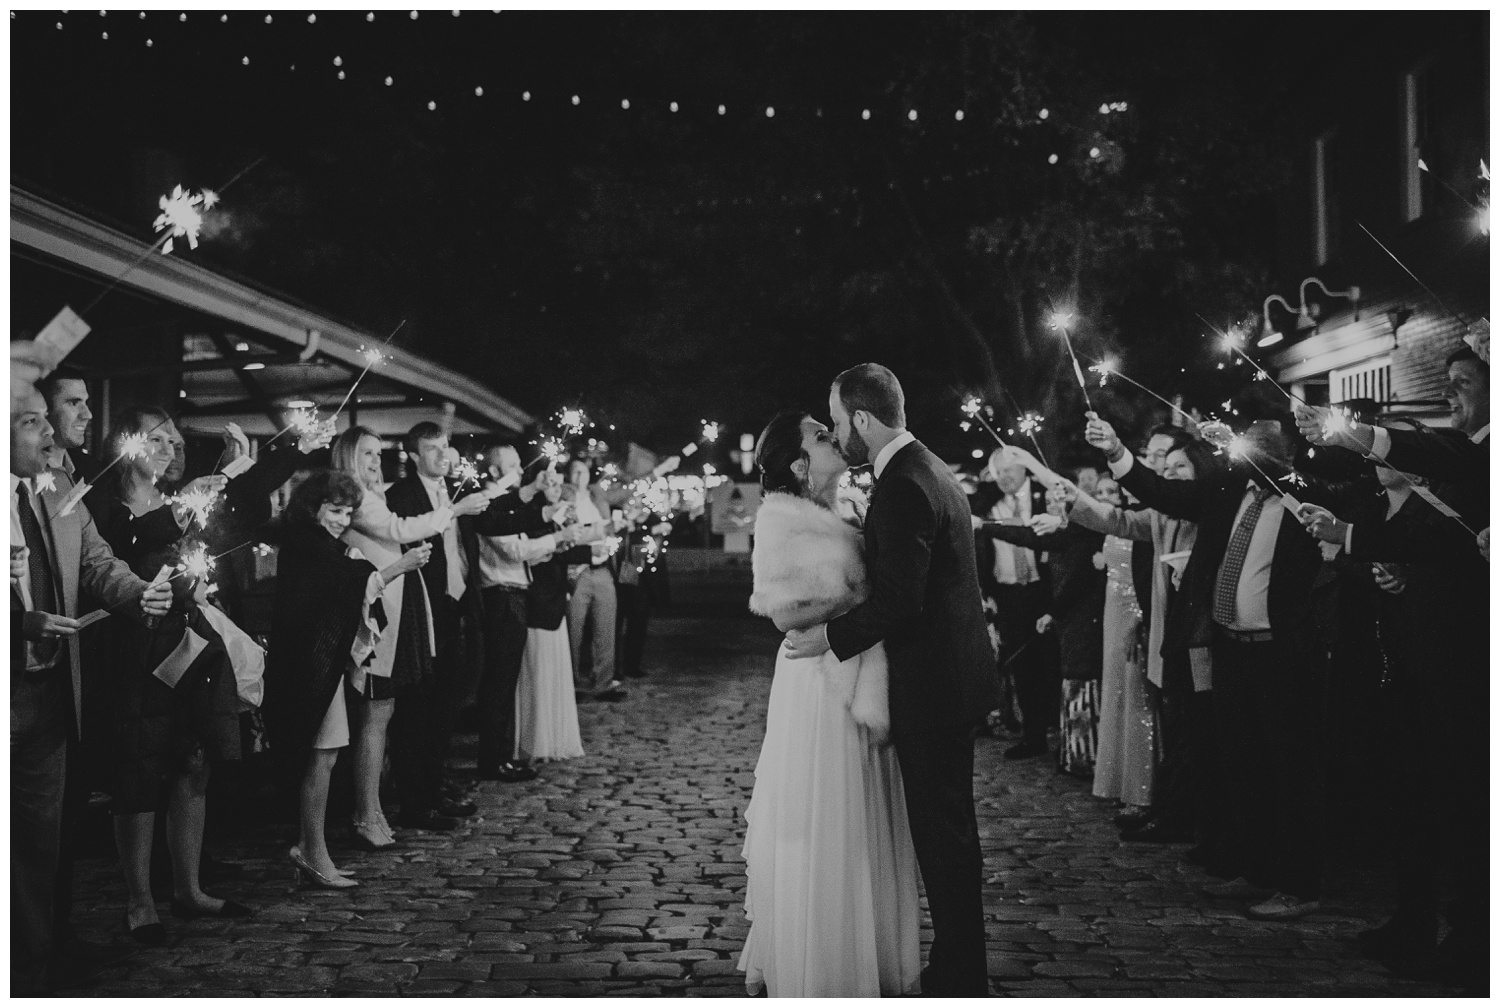 The bride and groom kissed under the sparklers for their exits their wedding reception in downtown Raleigh, photos by Rose Trail Images.